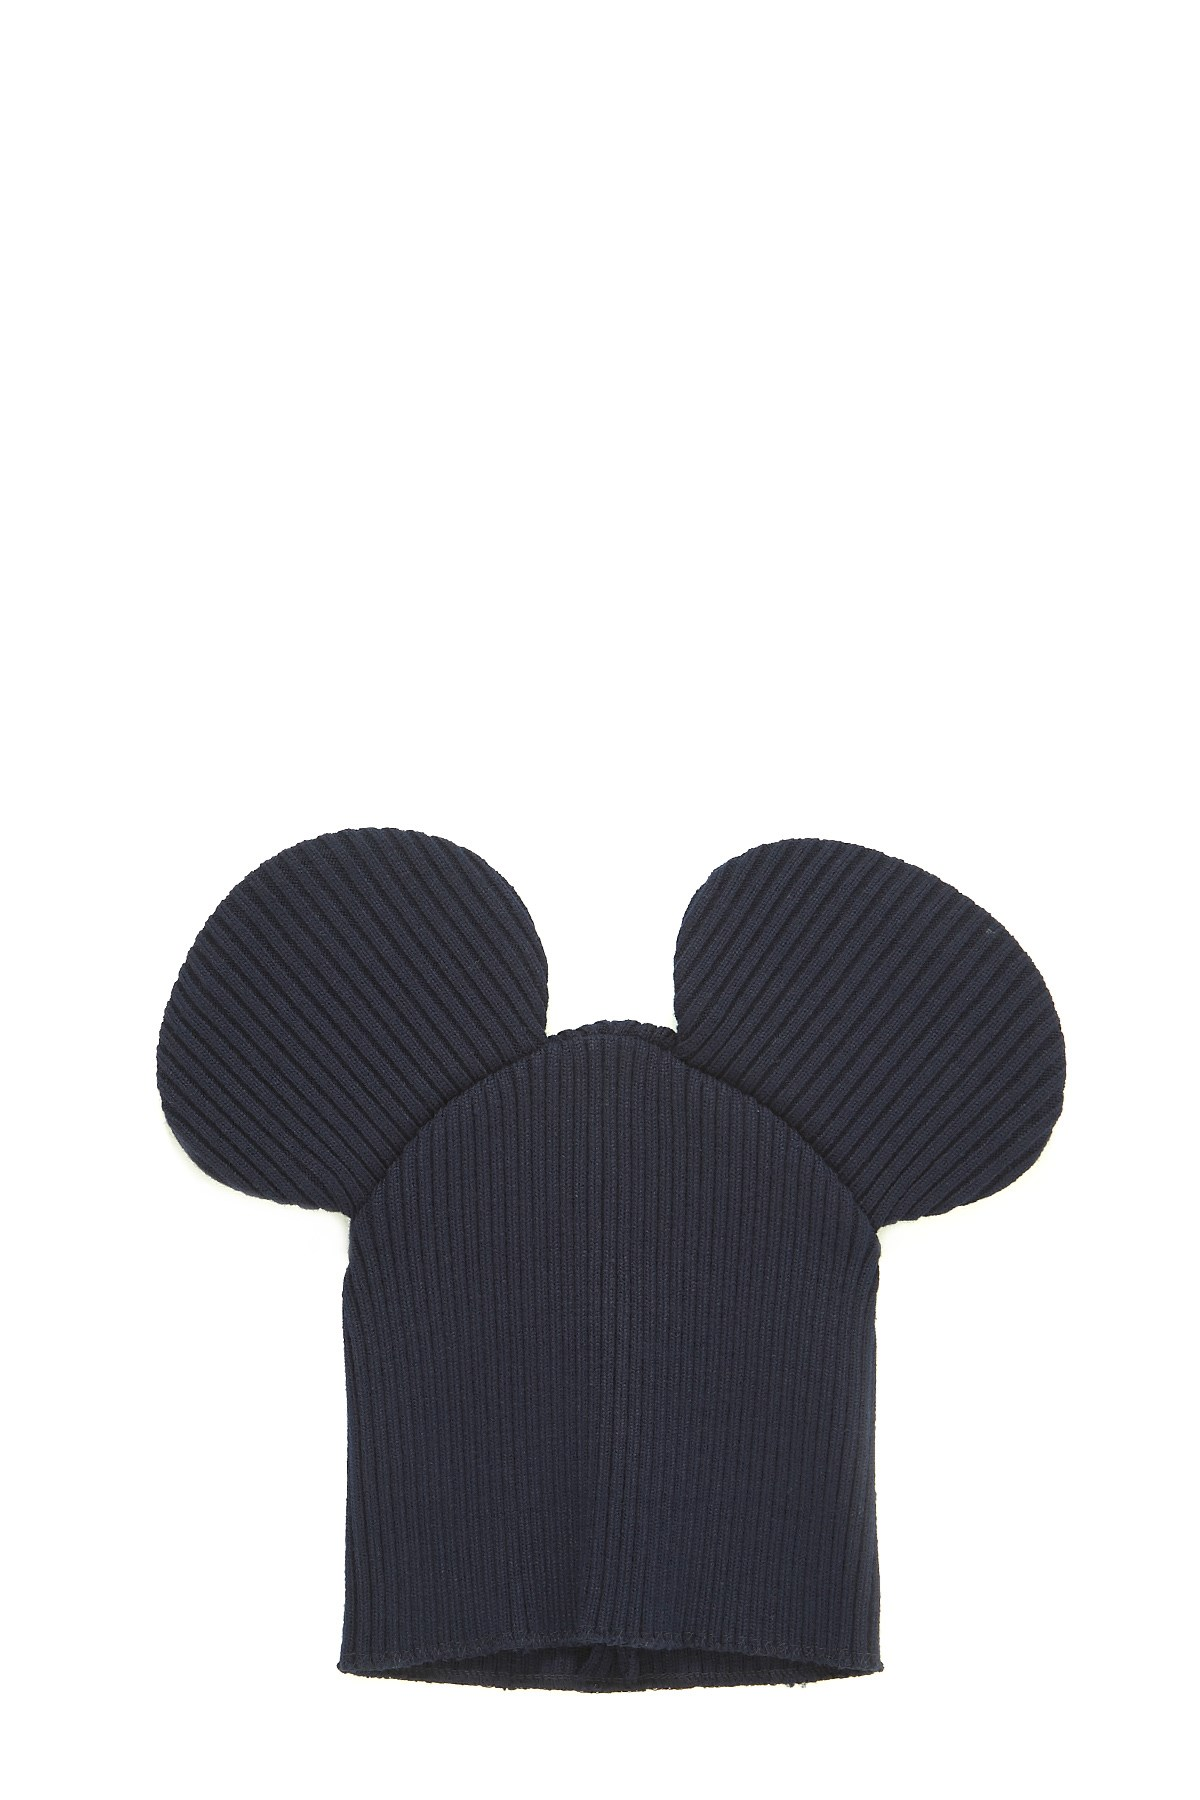 comme des garcons shirt boys ear beanie available on julian-fashion ... dc61dafb4be